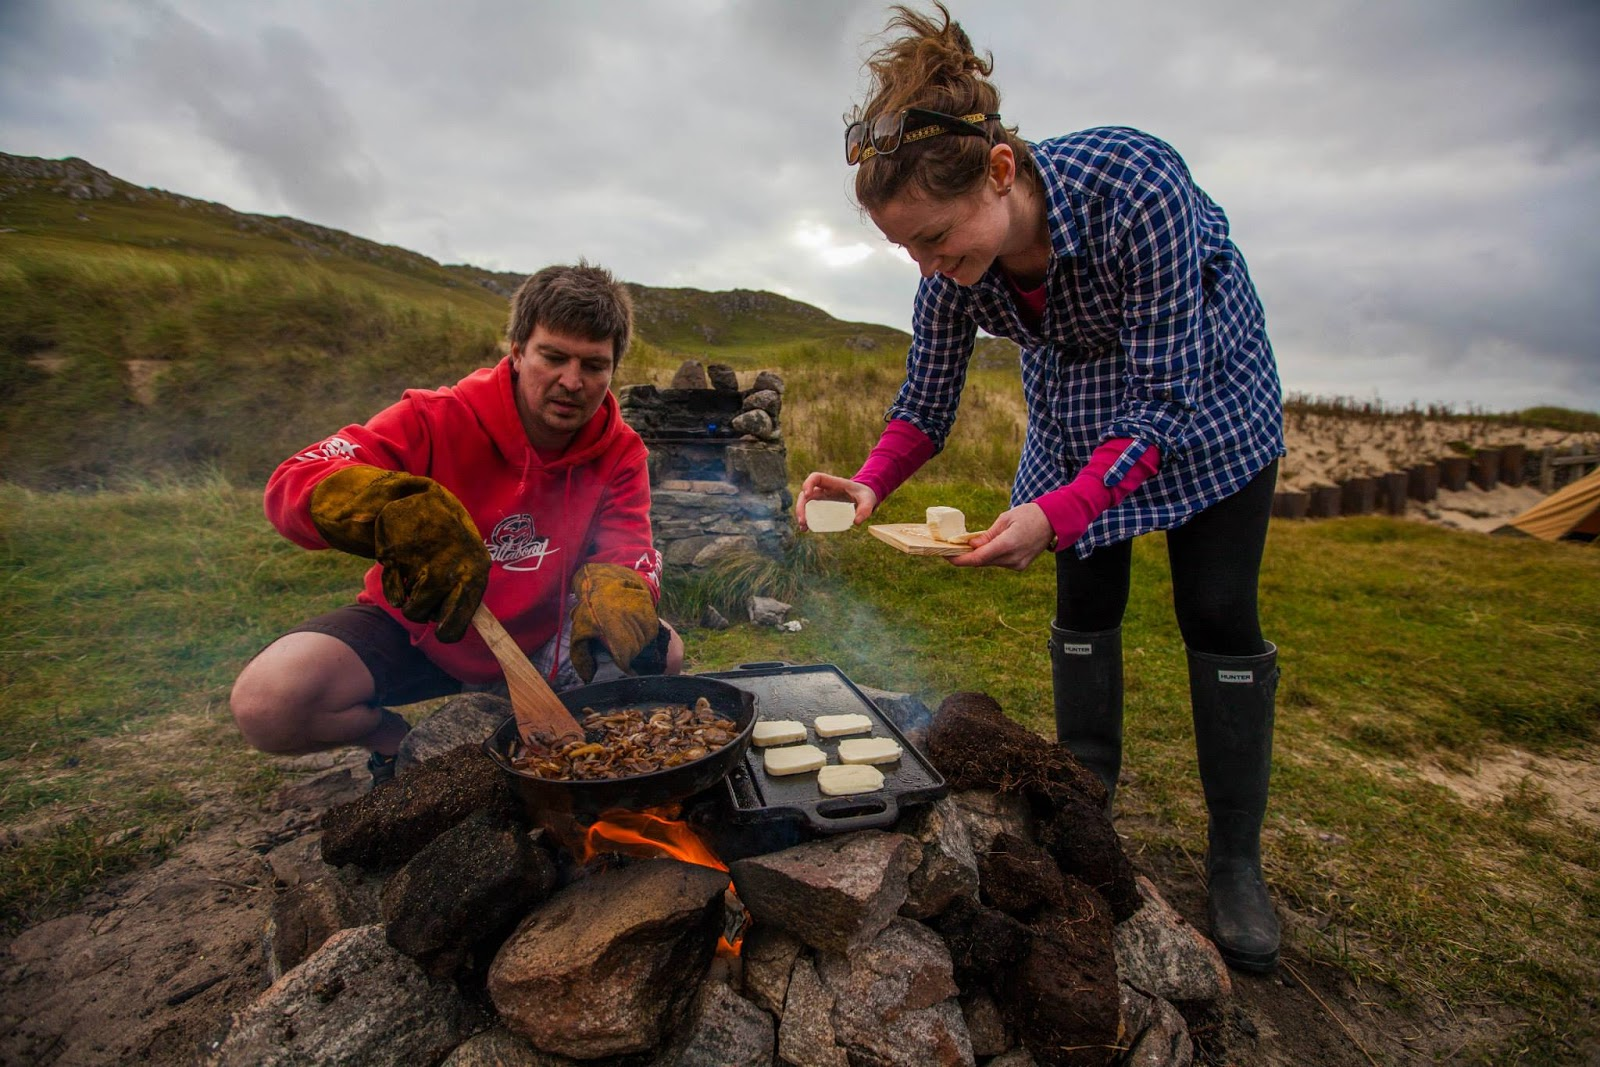 halloumi onions outdoor cooking beach side isle of lewis Dal Mor western isles outer hebrides freckles and all blog island life